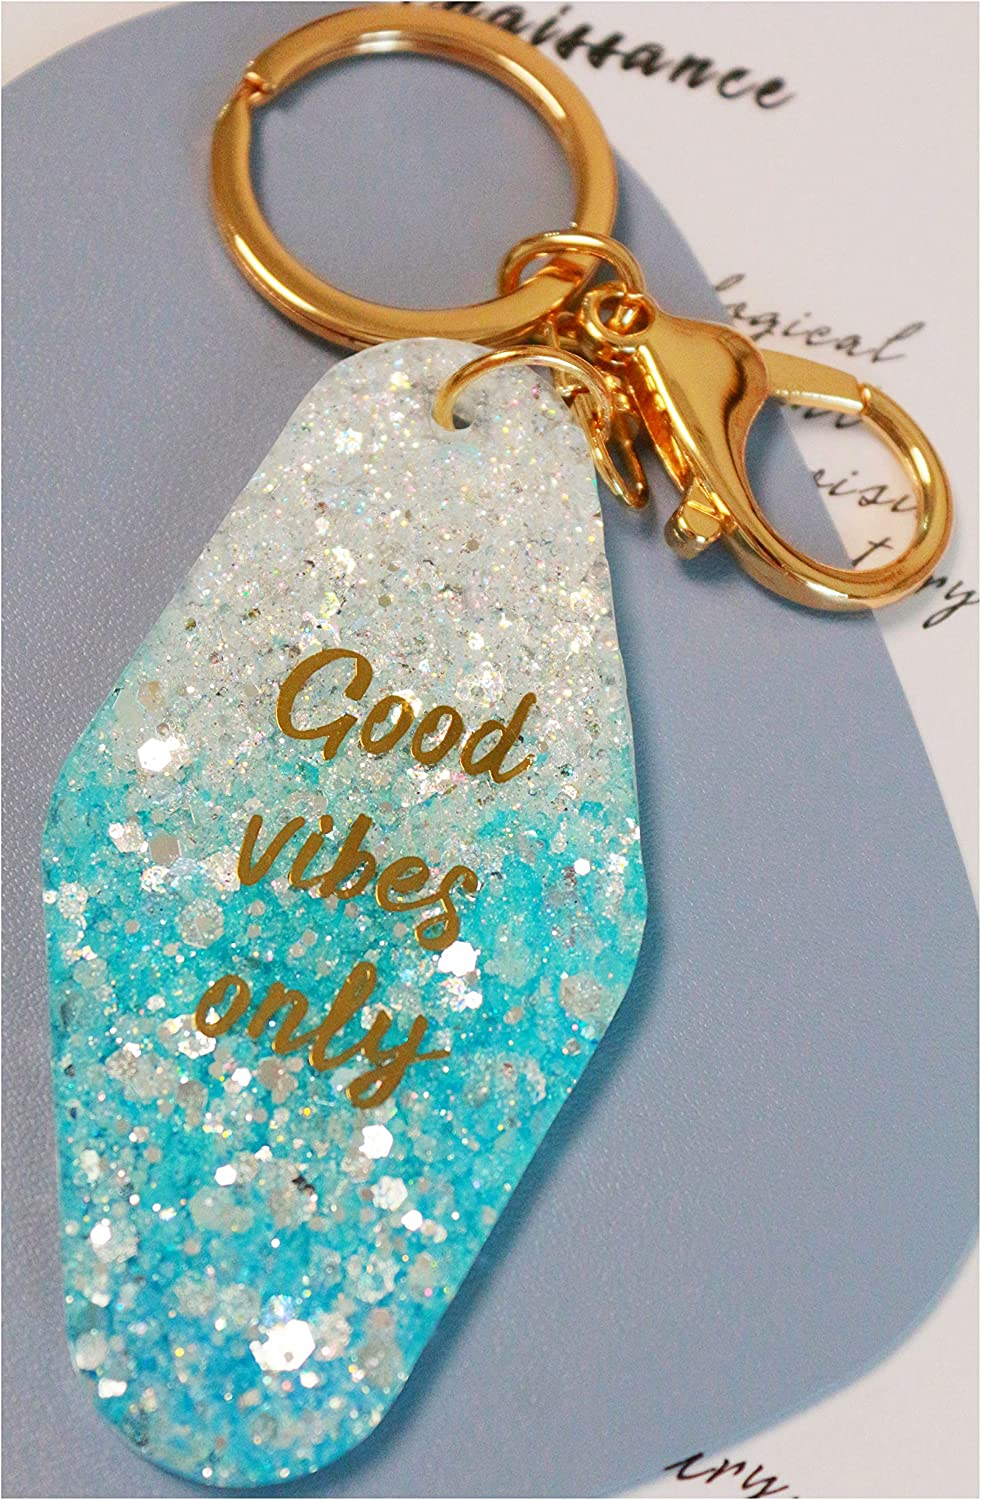 Cosmic Heart Keychain  key chains for women  motel tag hotel accessories black acrylic gold  mystical witchy gifts  souvenir gift